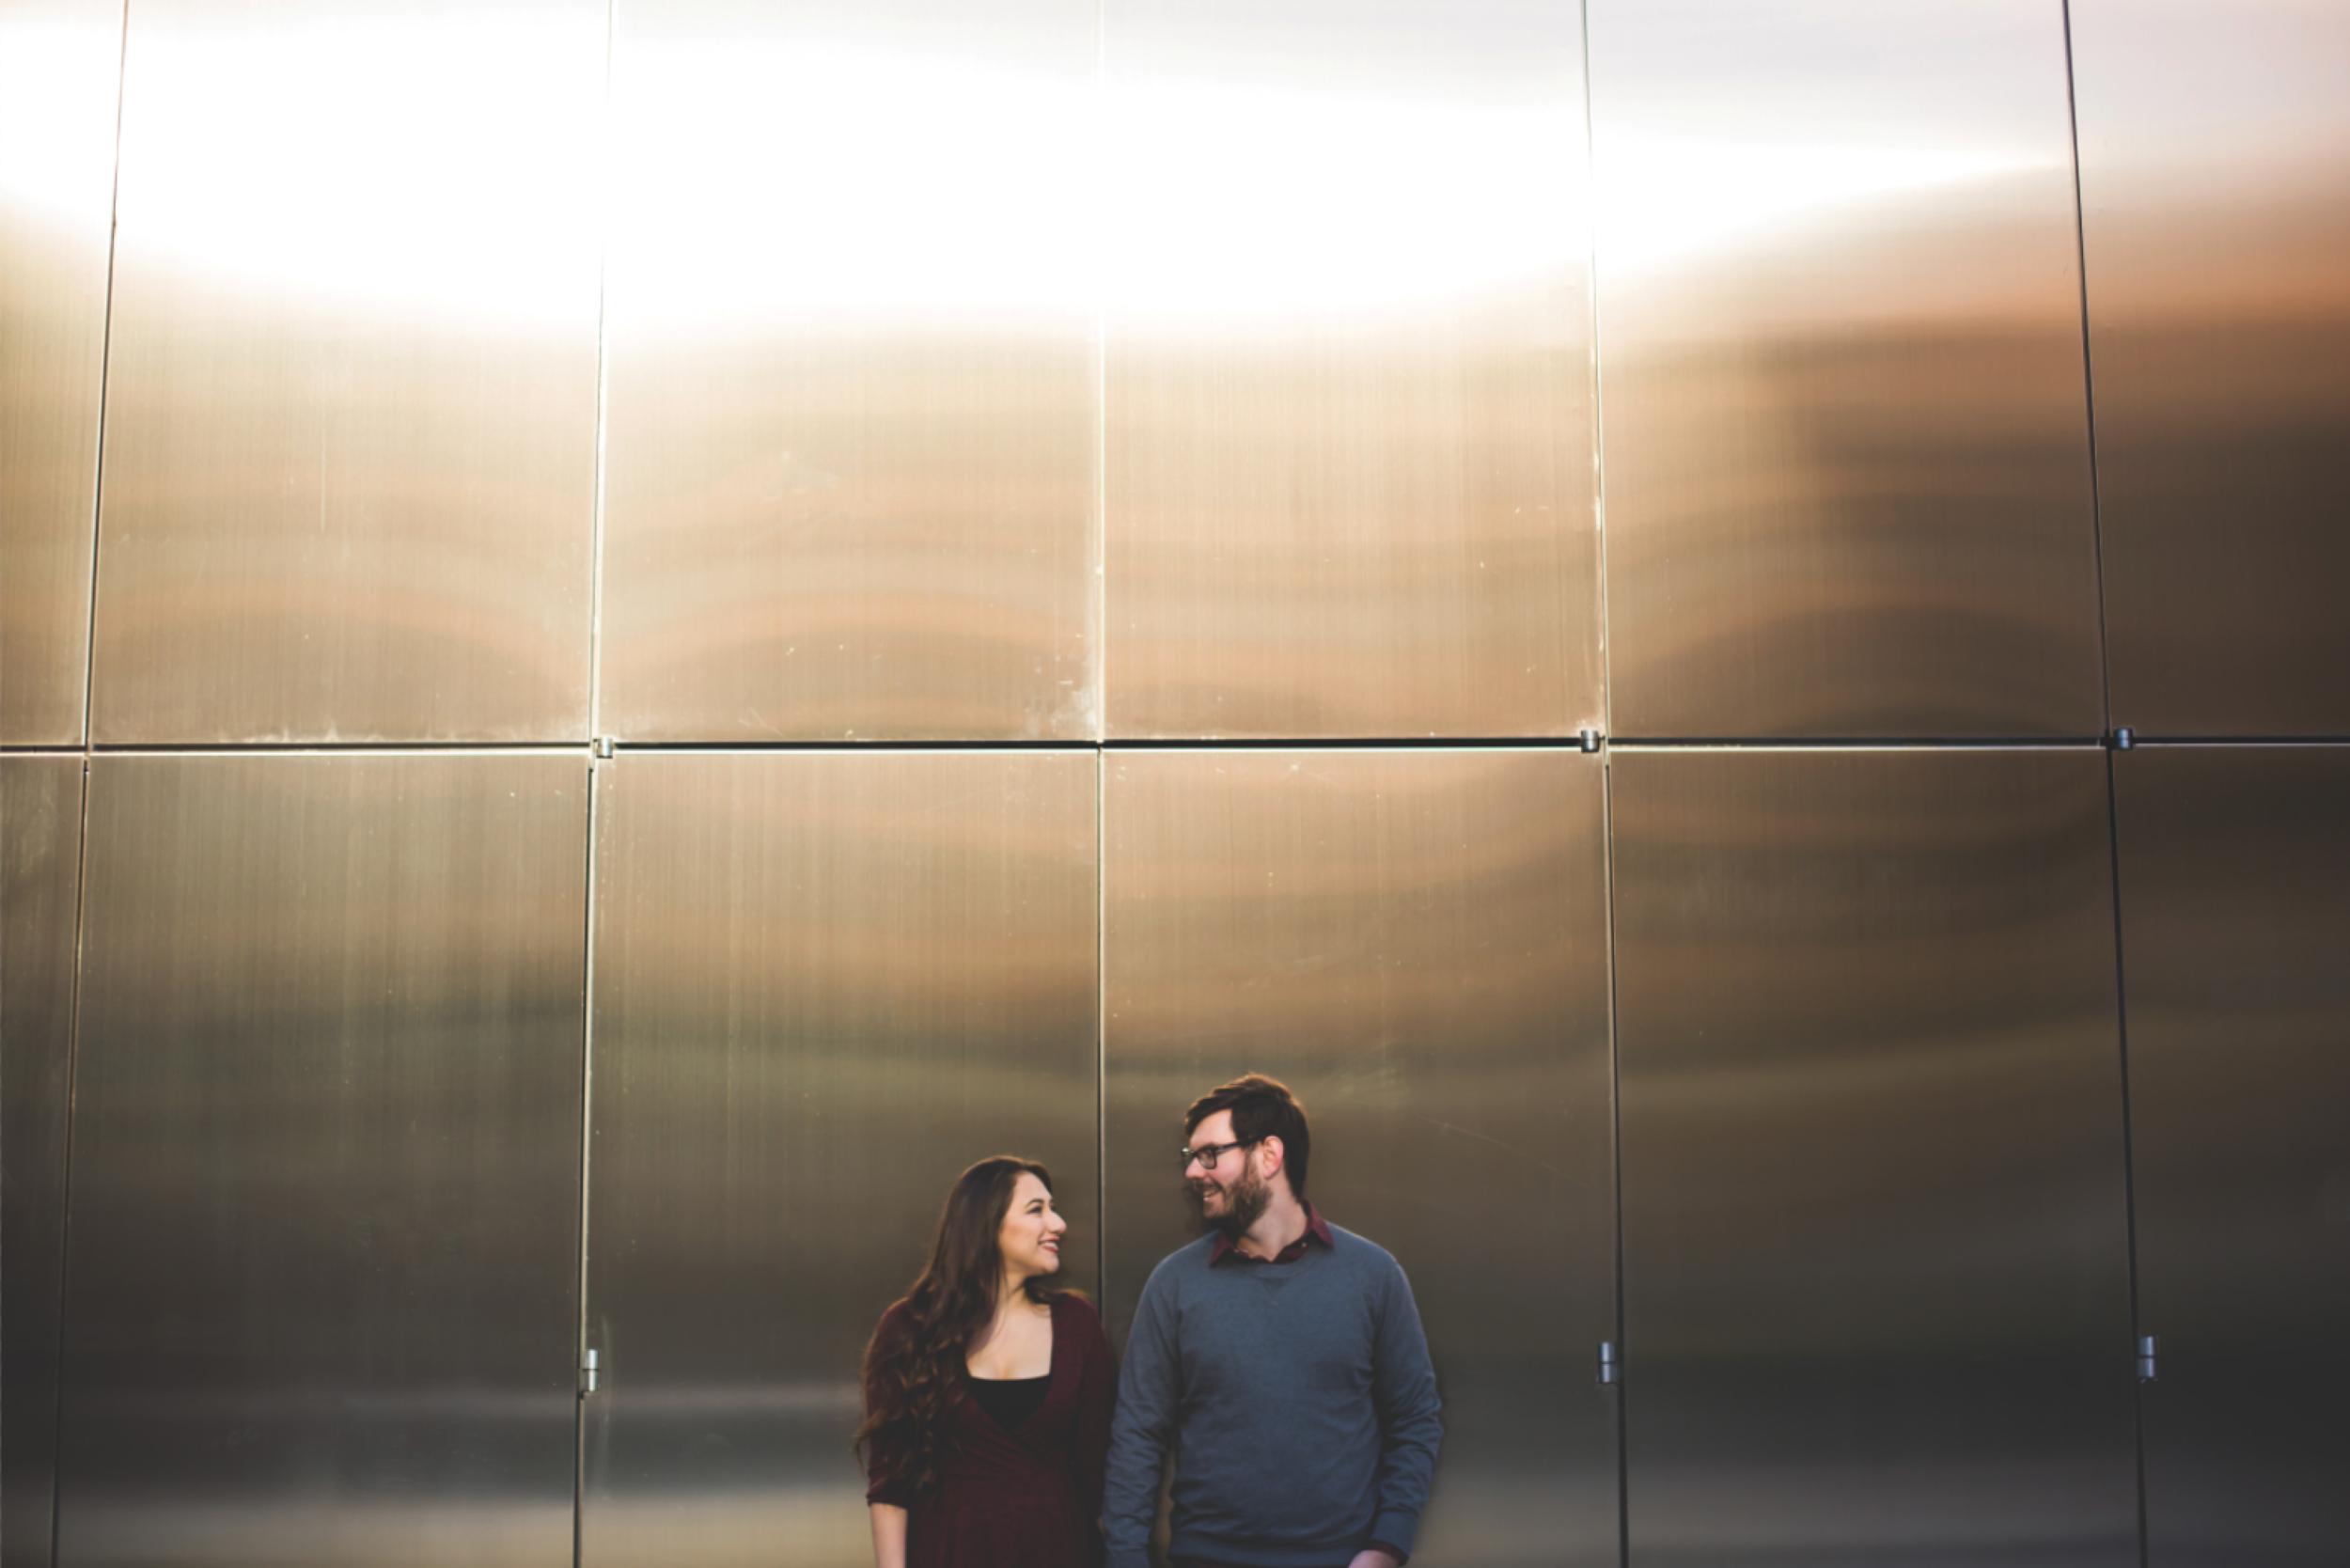 Engagement-Session-Hamilton-Burlington-Oakville-Niagara-Toronto-Wedding-Photographer-Engaged-Photography-Urban-Engaged-Downtown-Golden-Hour-Moments-by-Lauren-Photo-Image-17.png